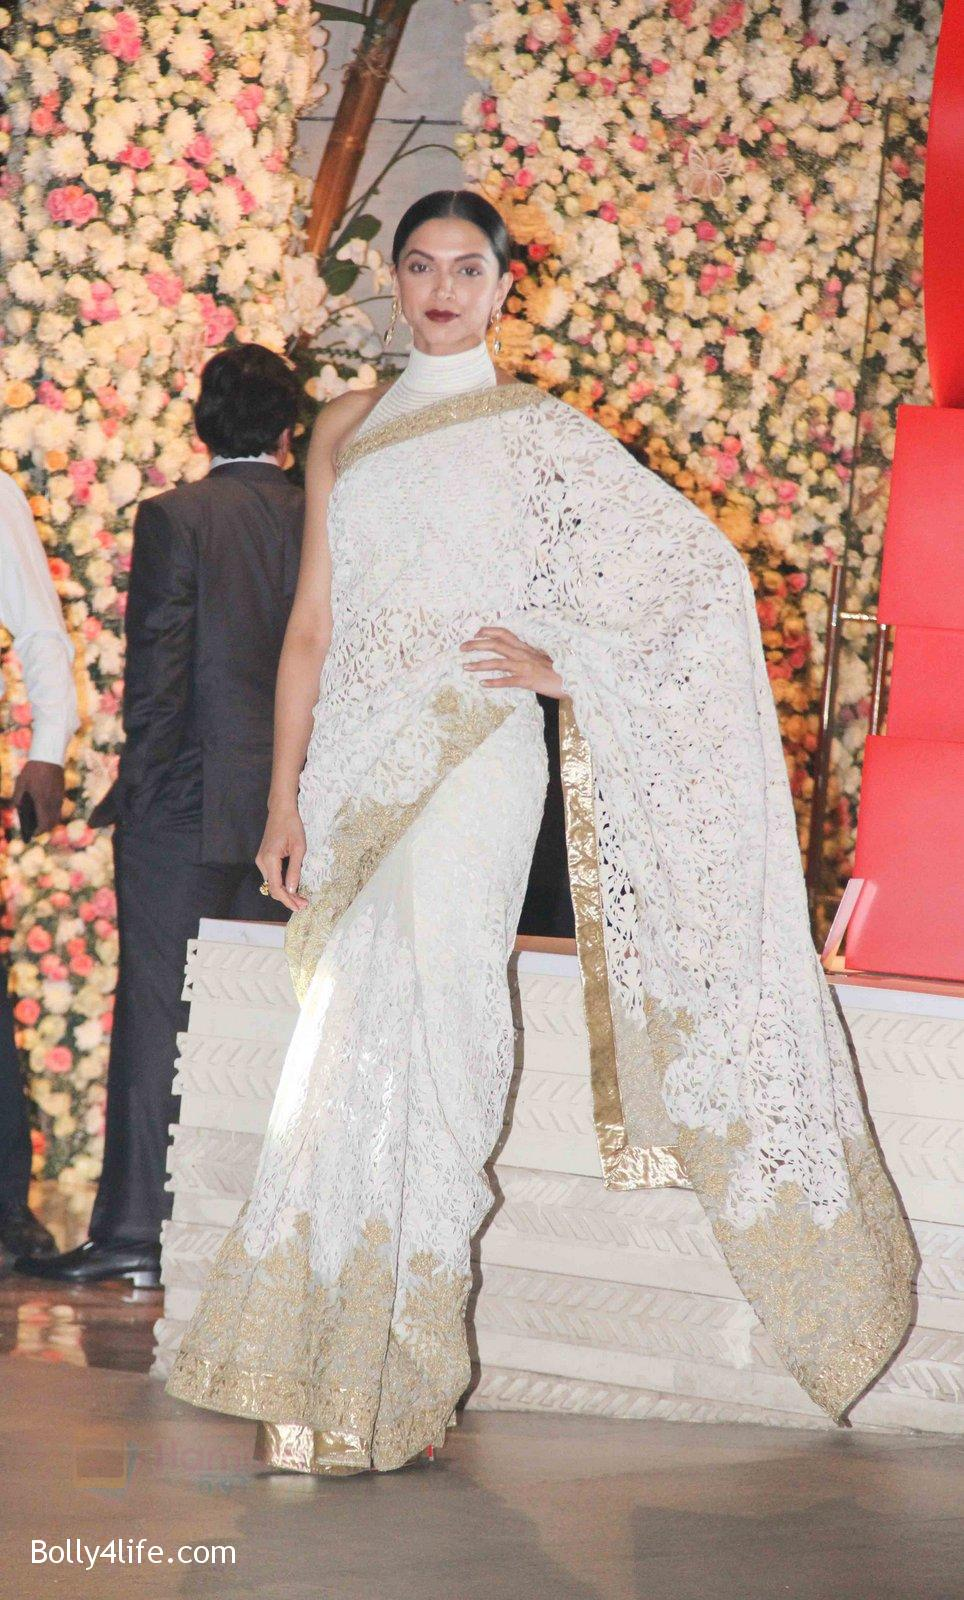 Deepika-Padukone-at-the-Ambanis-wedding-party-of-their-niece-Isheta-Salgaoncar-3.jpg